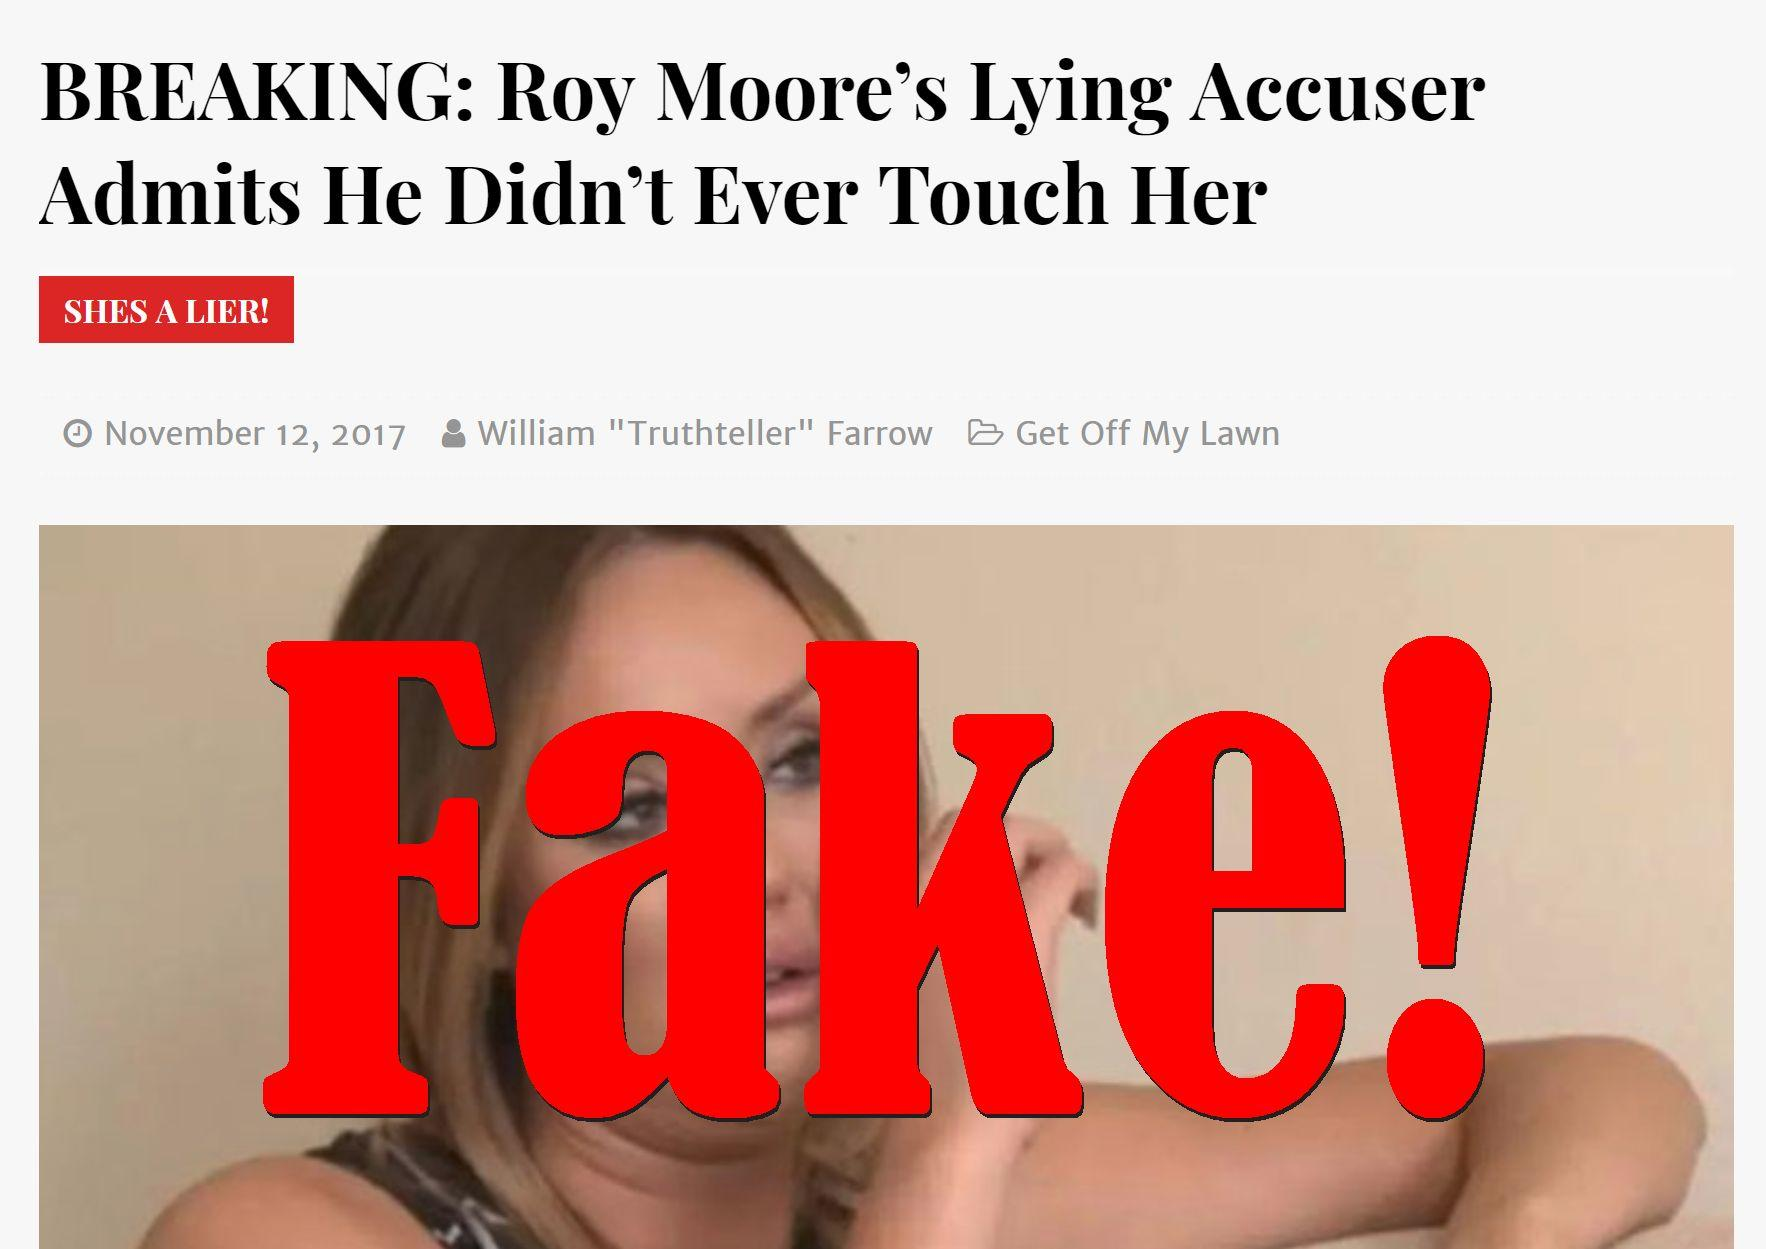 Fake News: Roy Moore's Accuser Did NOT Admit He Didn't Ever Touch Her